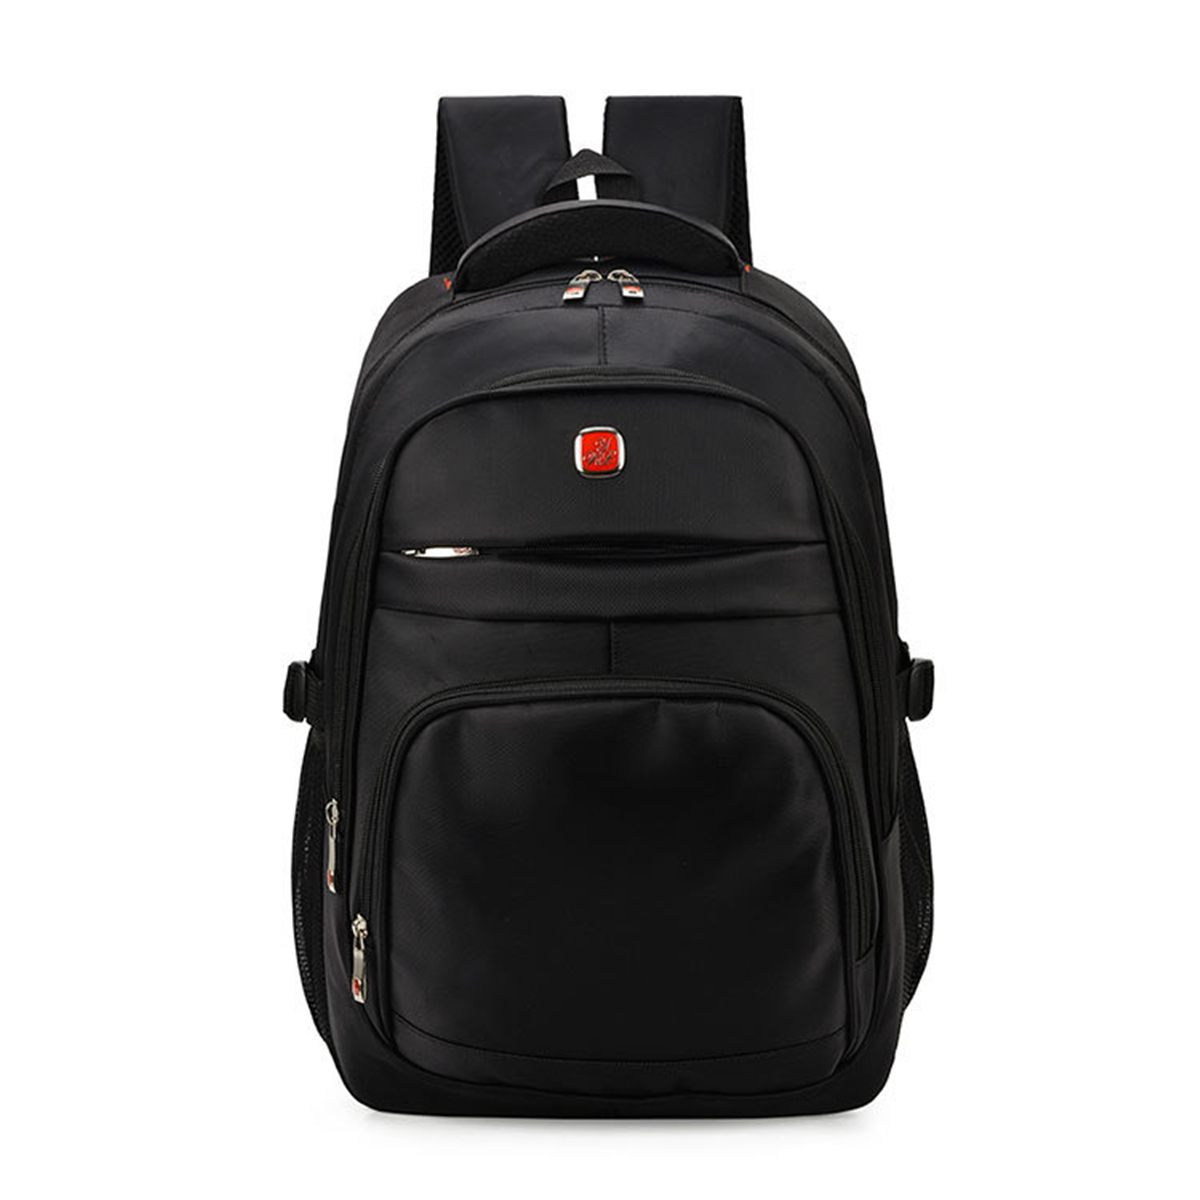 Fashion Men 15 Inch Laptop Backpacks Feminine Nylon Rucksack Casual Black Backpack Schoolbag For Teenagers Male Travel Mochilas